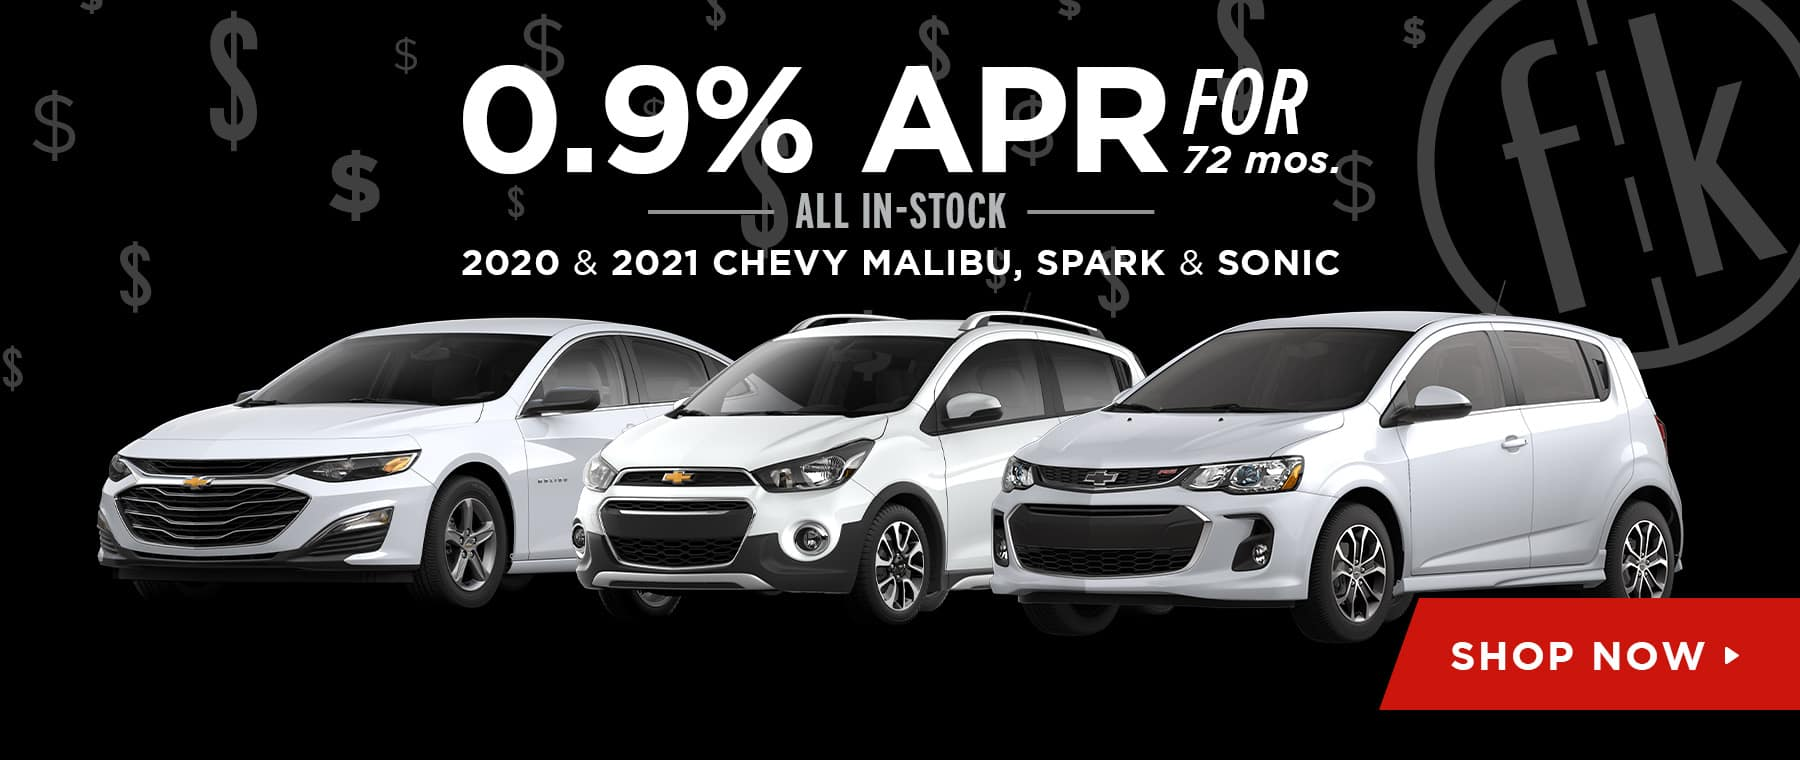 0.9% for 72 mos. All In-Stock 2020 & 2021 Chevy Malibu, Spark, & Sonic